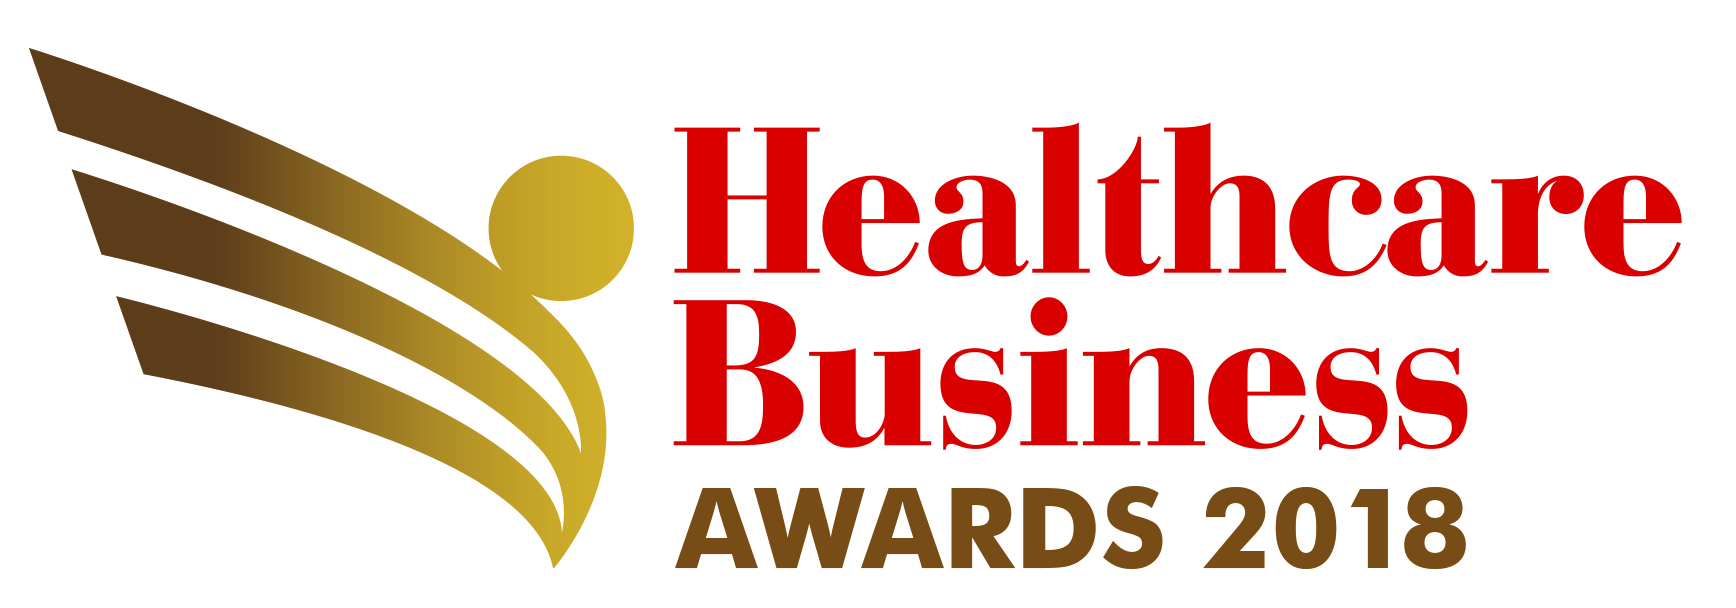 HEALTHCARE BUSINESS AWARDS LOGO